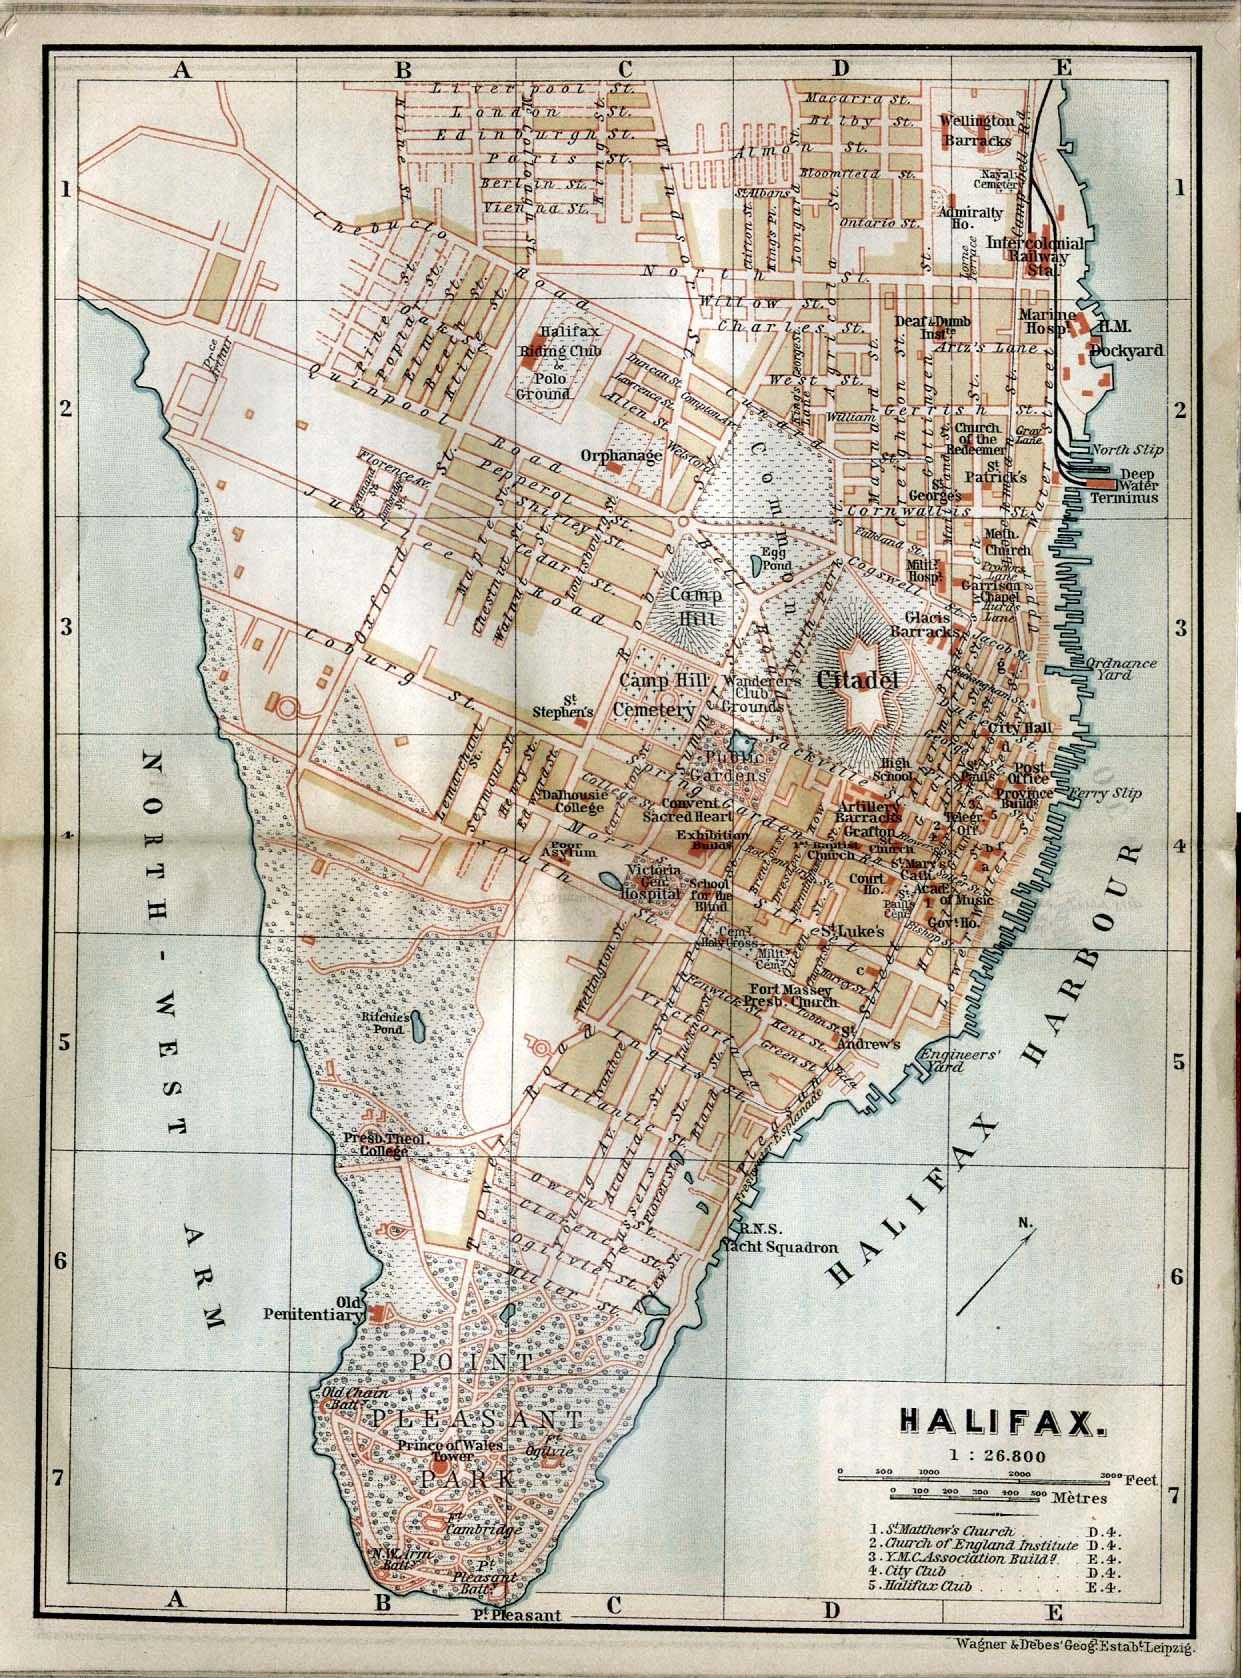 Vintage Halifax Map The city has grown a